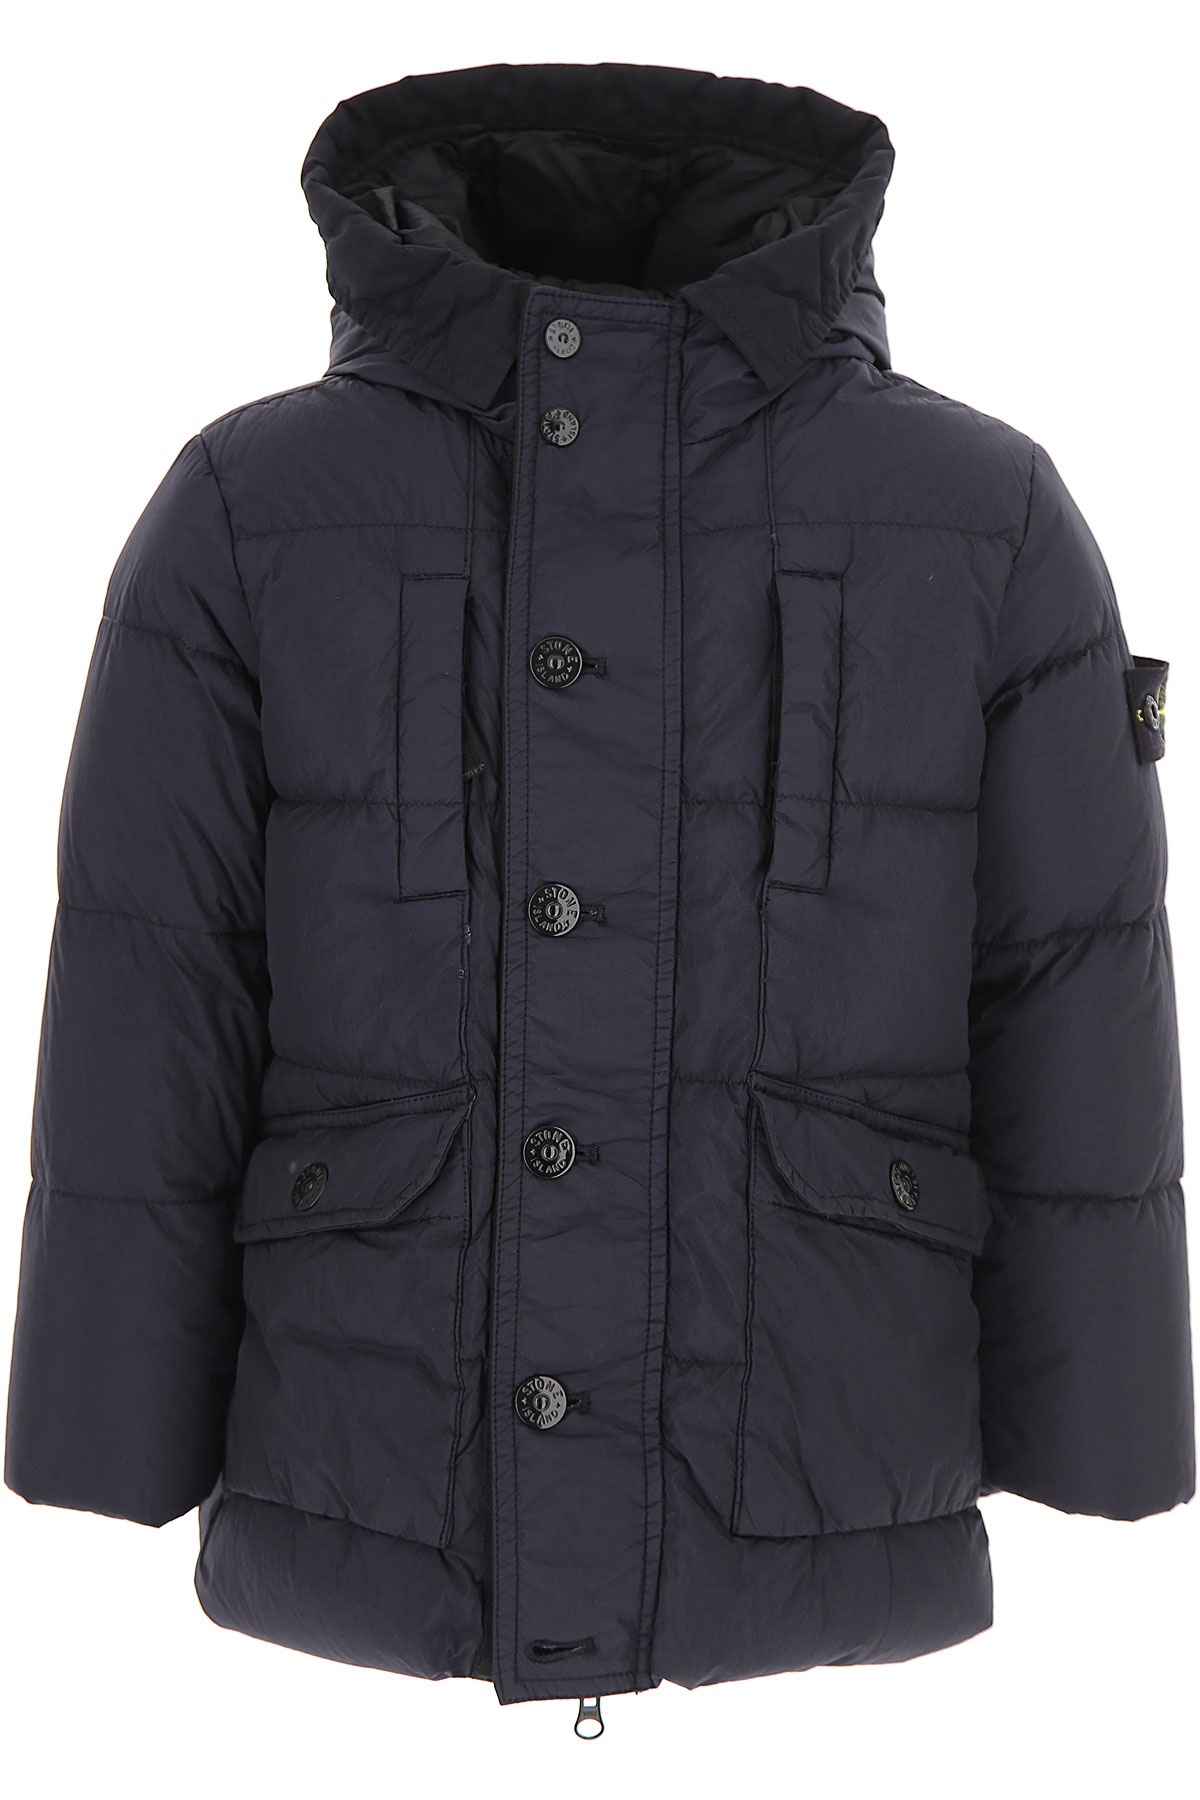 Image of Stone Island {DESIGNER} Kids Coat for Boys, Blue, polyamide, 2017, 10Y 6Y 8Y